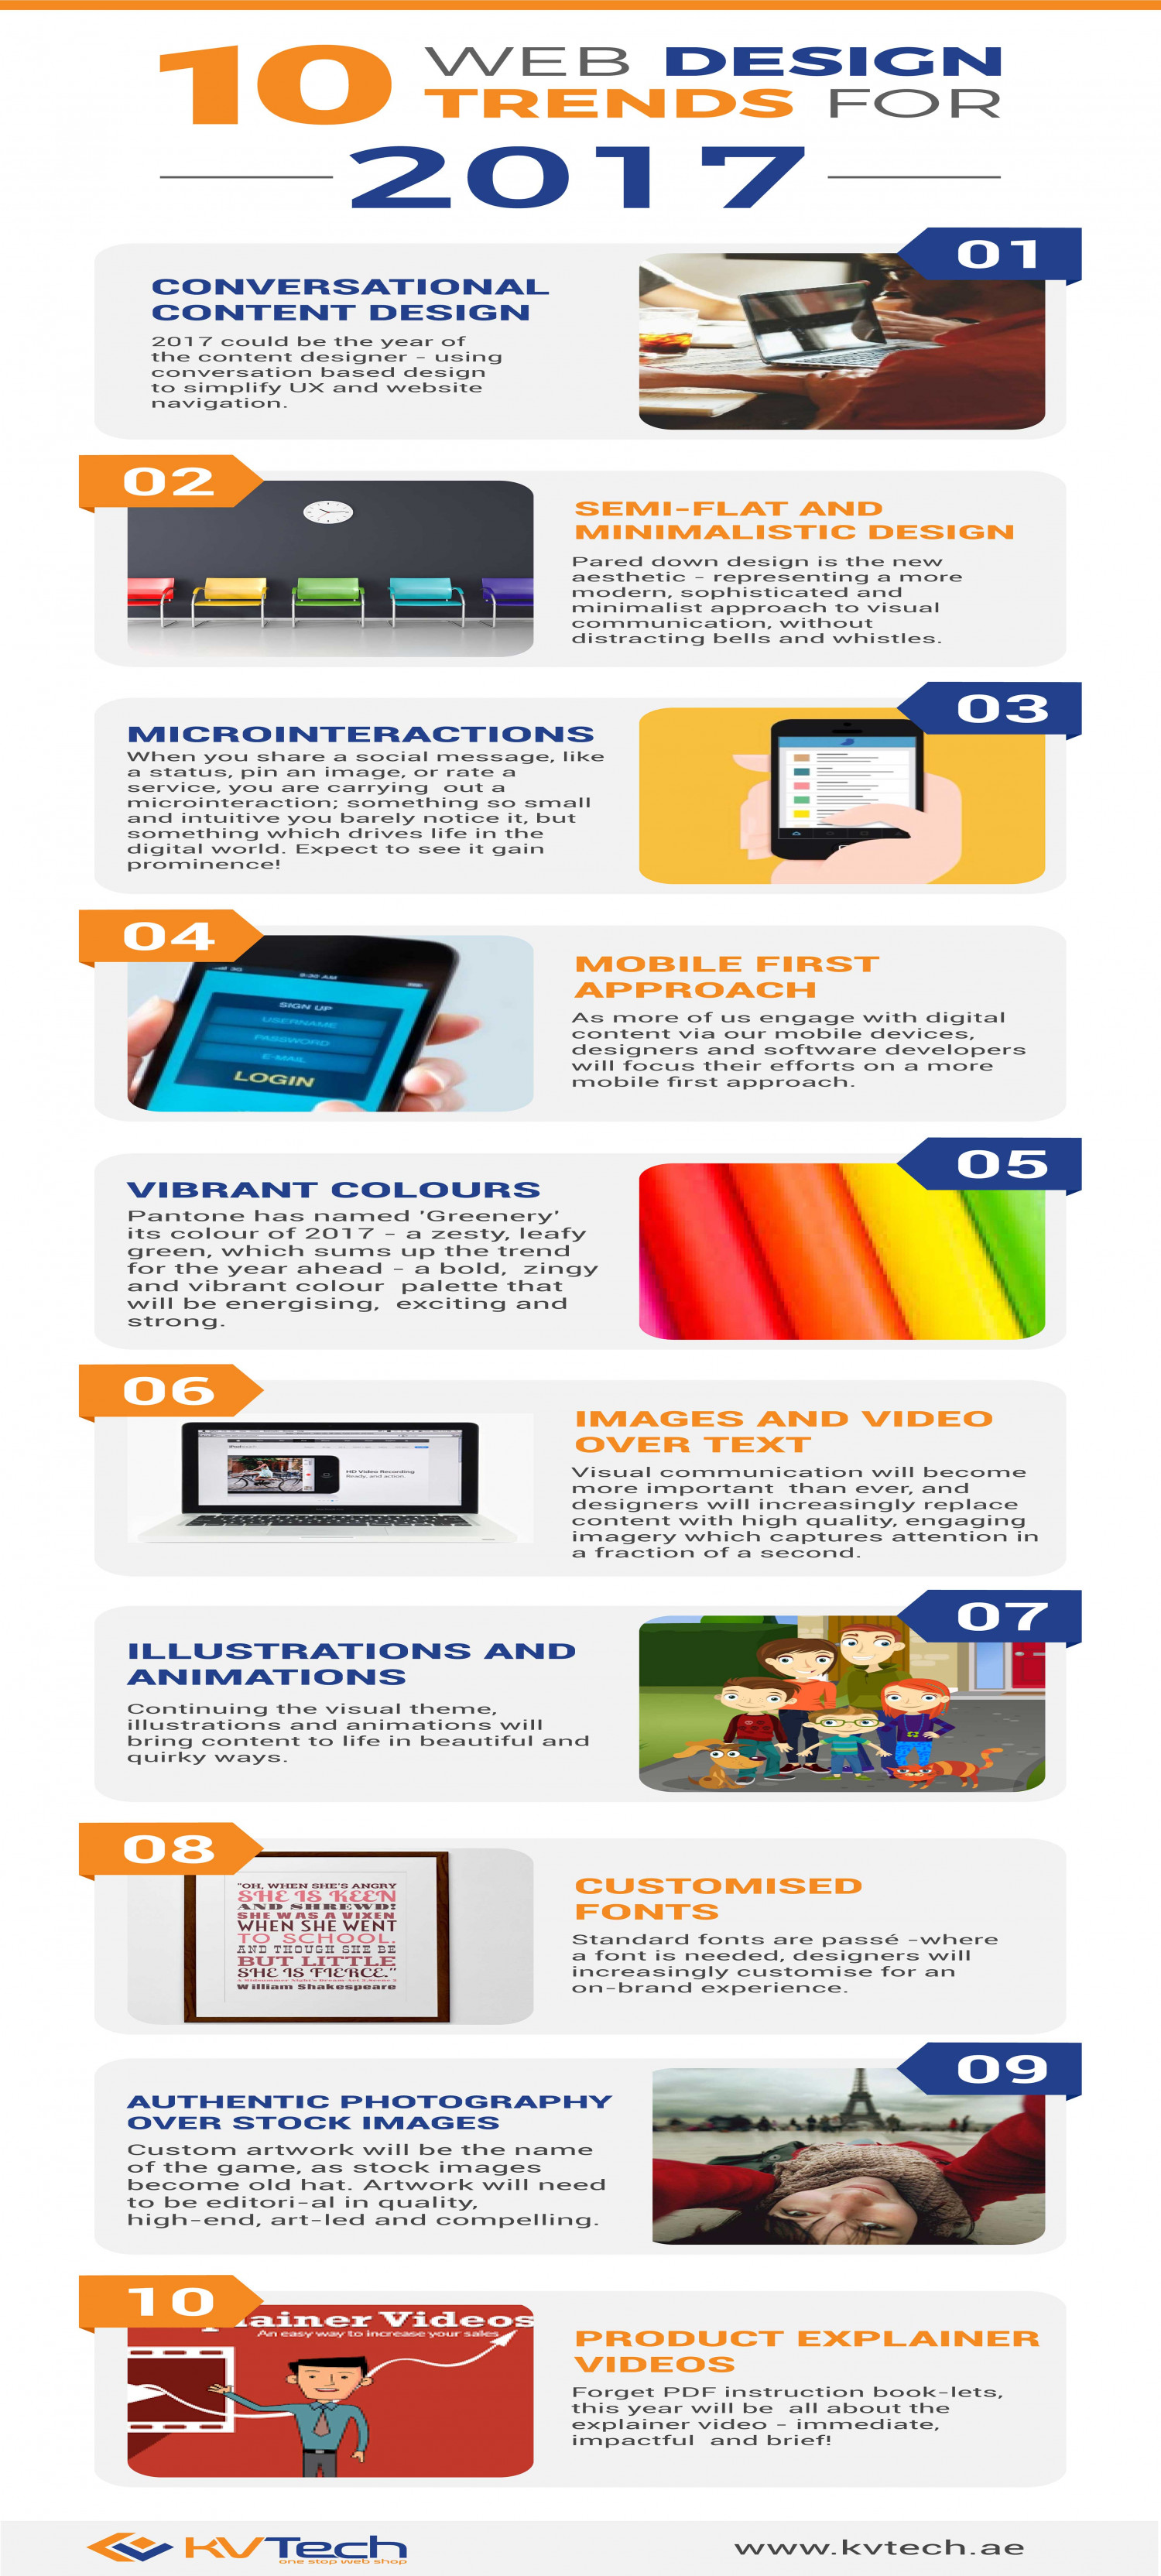 Top 10 Website Design Trends 2017 Infographic